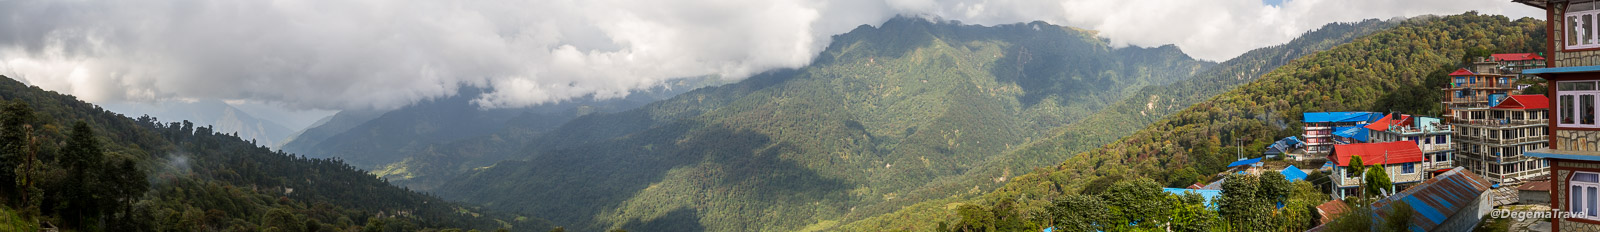 The view from my guesthouse in Ghorepani in the Annapurna Conservation Area, Nepal